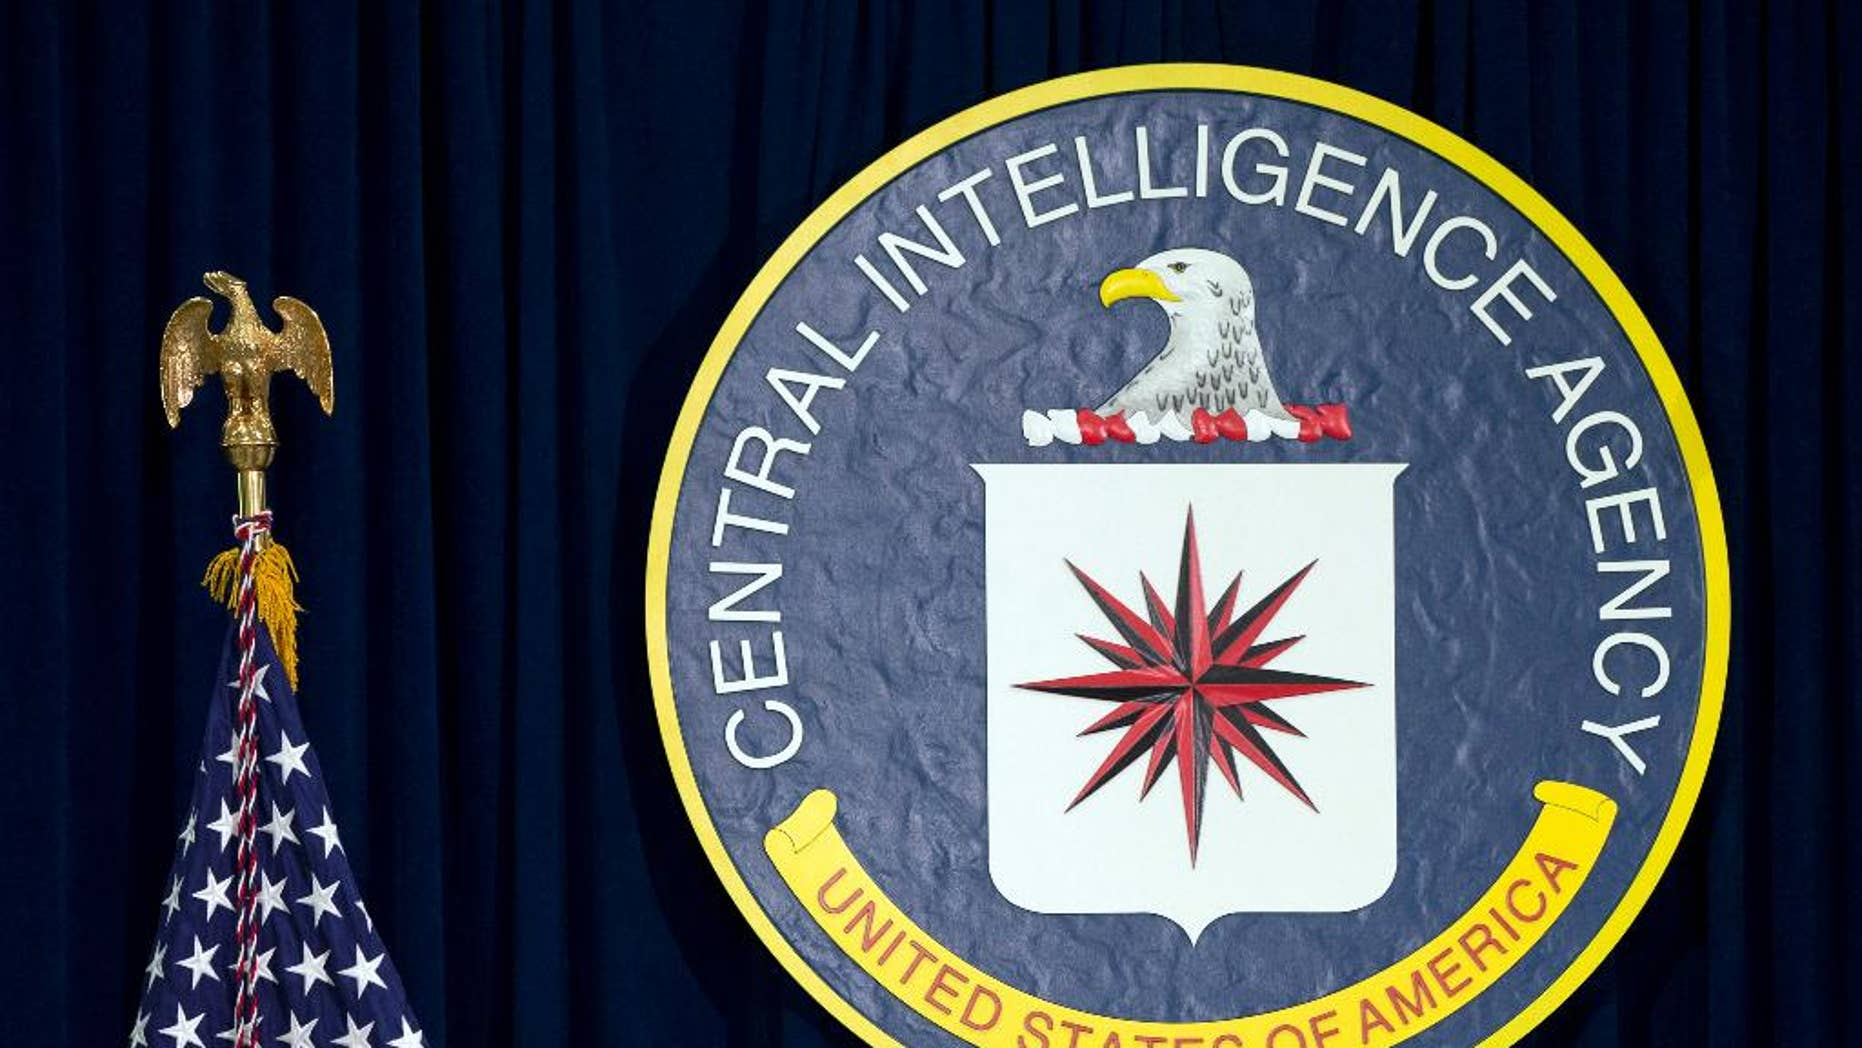 FILE - This April 13, 2016, file photo shows the seal of the Central Intelligence Agency at CIA headquarters in Langley, Va. WikiLeaks' release of nearly 8,000 documents that purportedly reveal secrets about the CIA's tools for breaking into computers, cellphones and even smart TVs has given rise to multiple theories about whodunit and why. (AP Photo/Carolyn Kaster, File)